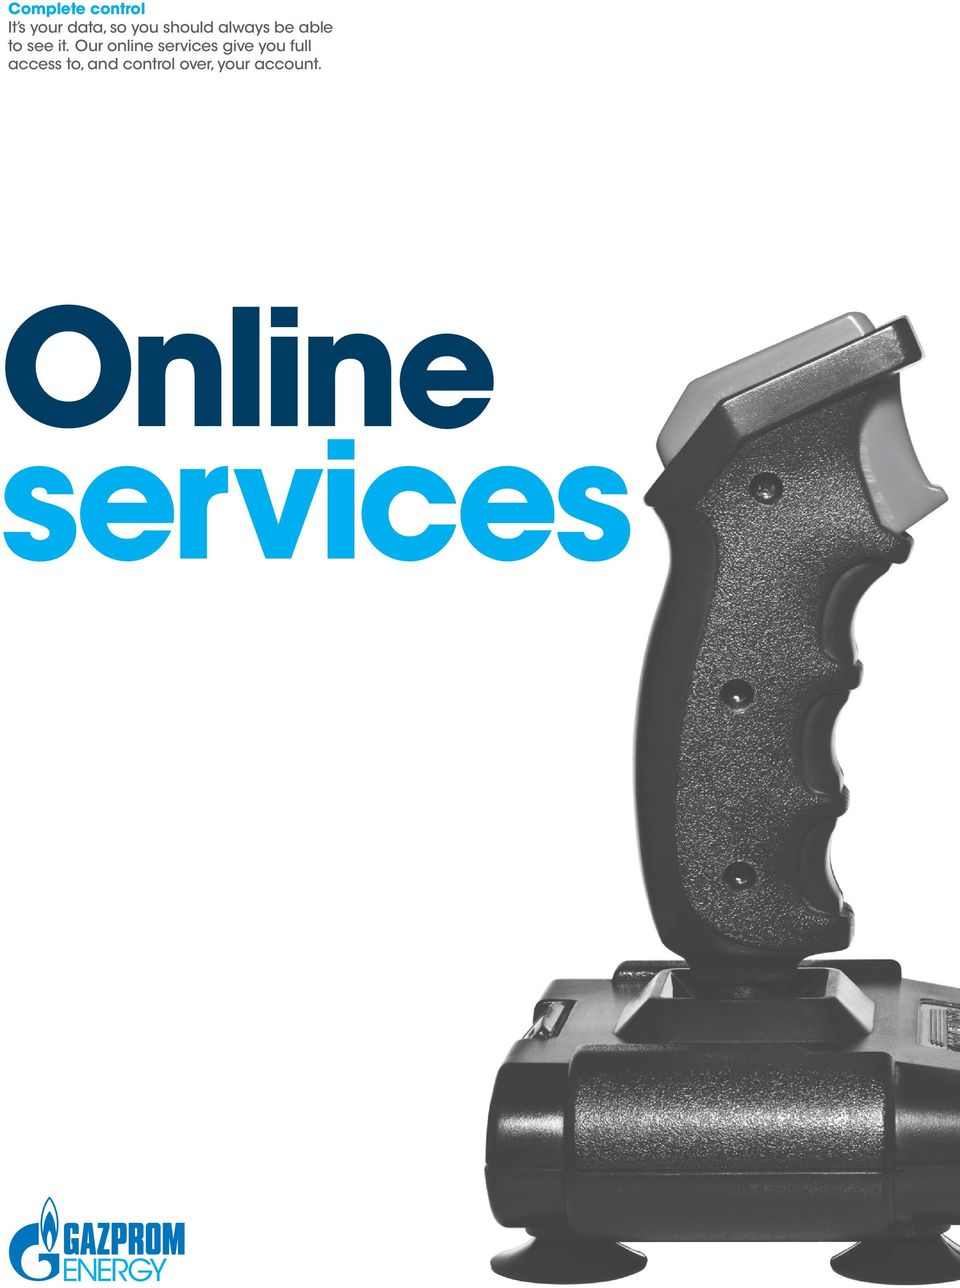 Our online services give you full access